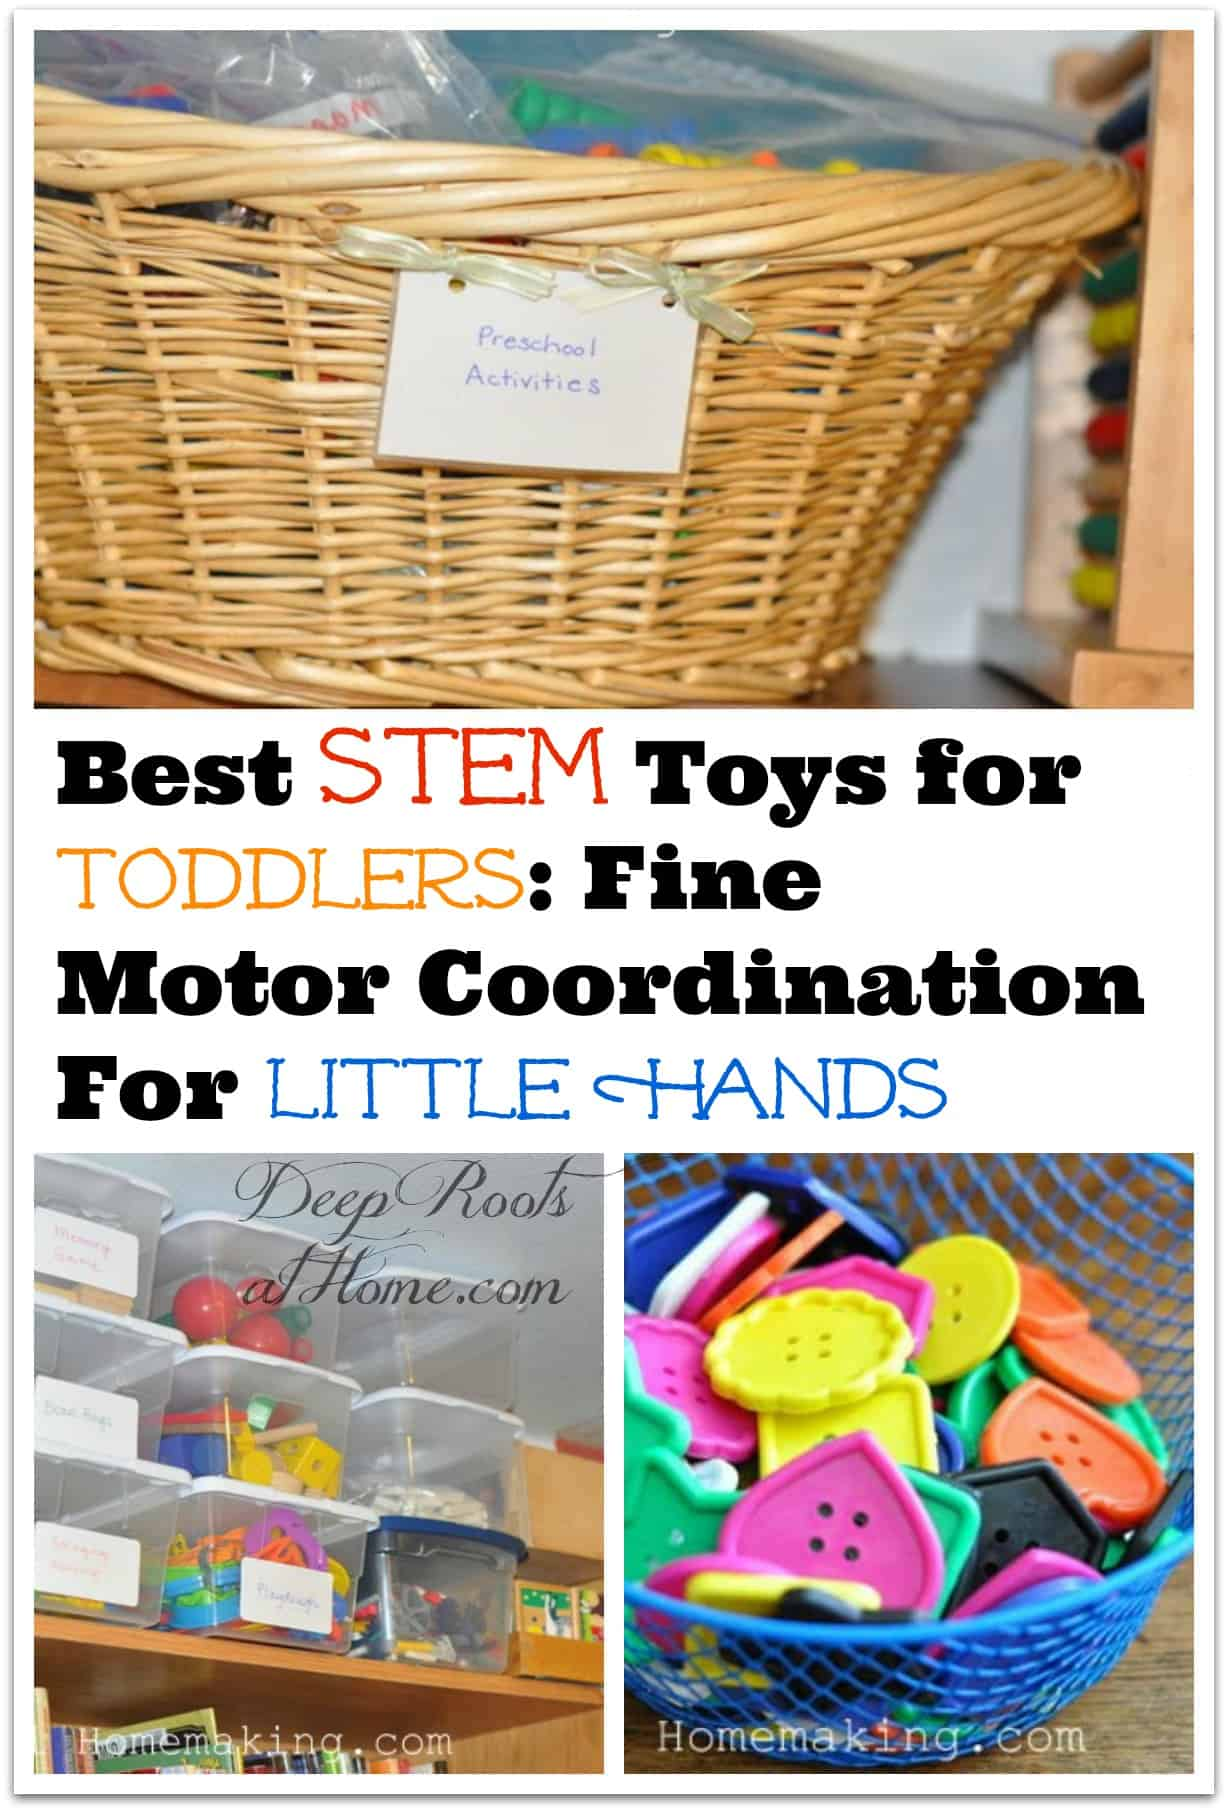 Best STEM Toys for Toddlers: Fine Motor Coordination For Little Hands. Preschool hand eye coordination activities and how to use and store them